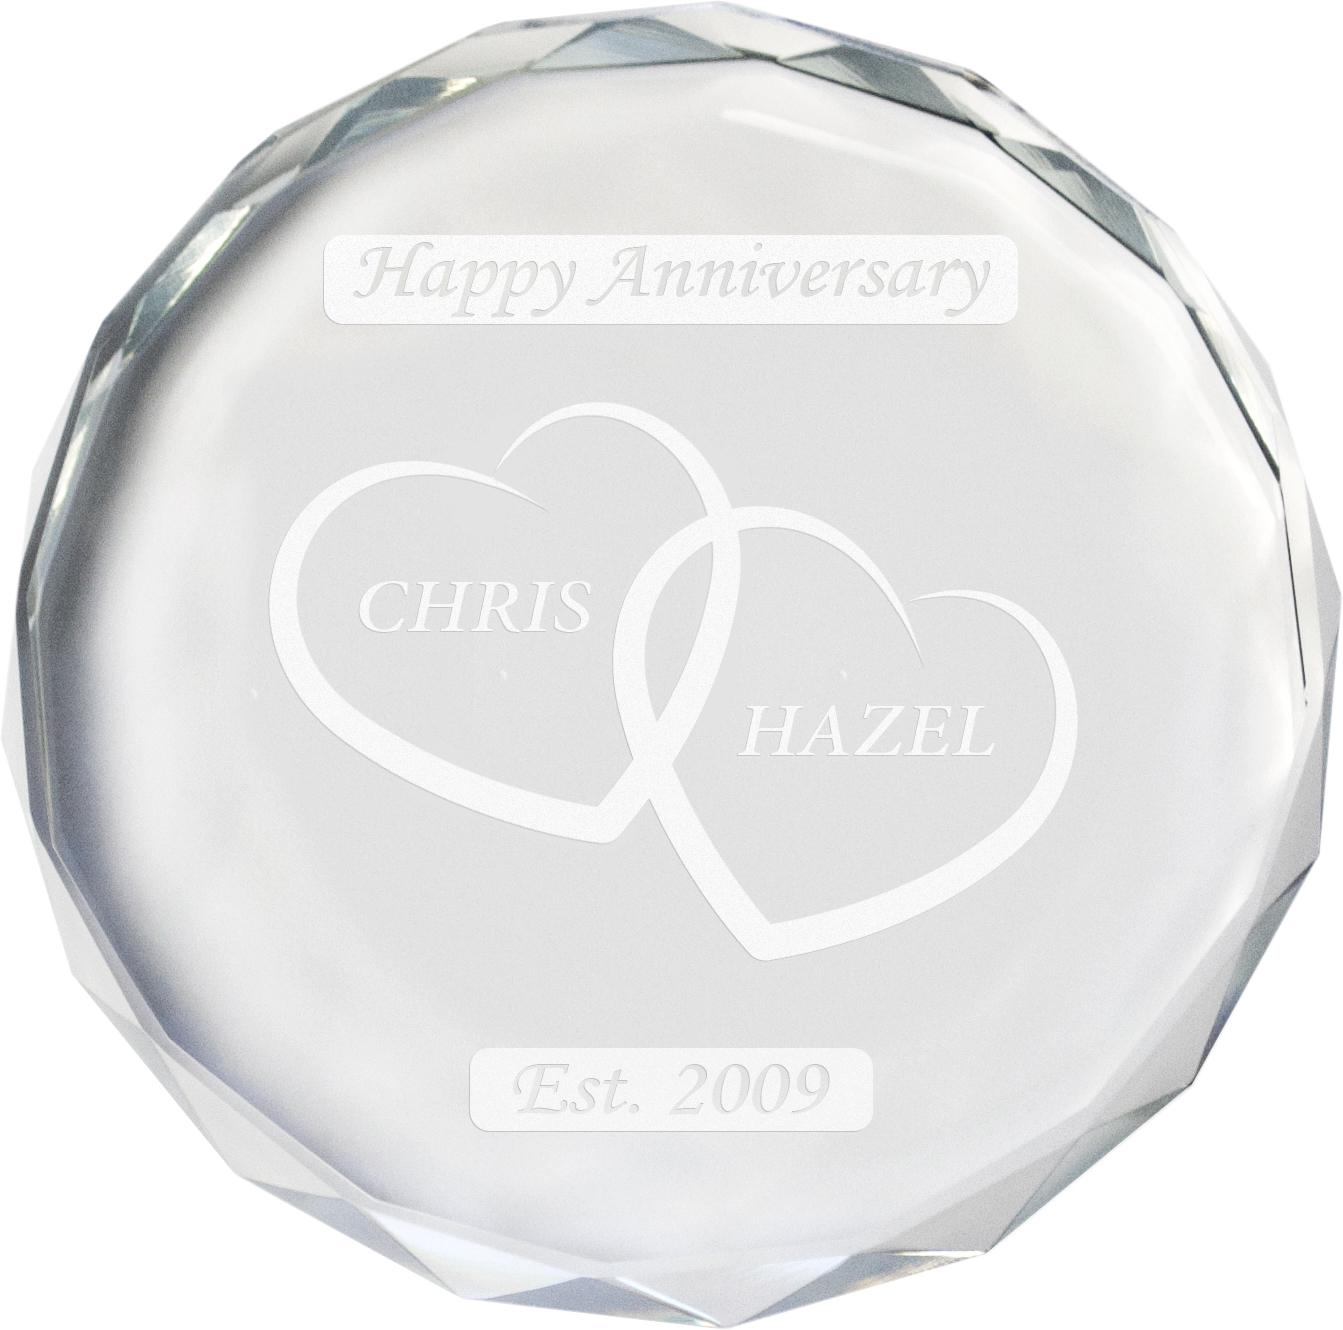 "Happy Anniversary Glass Crystal Paperweight - Heart Design 9cm (3.5"")"